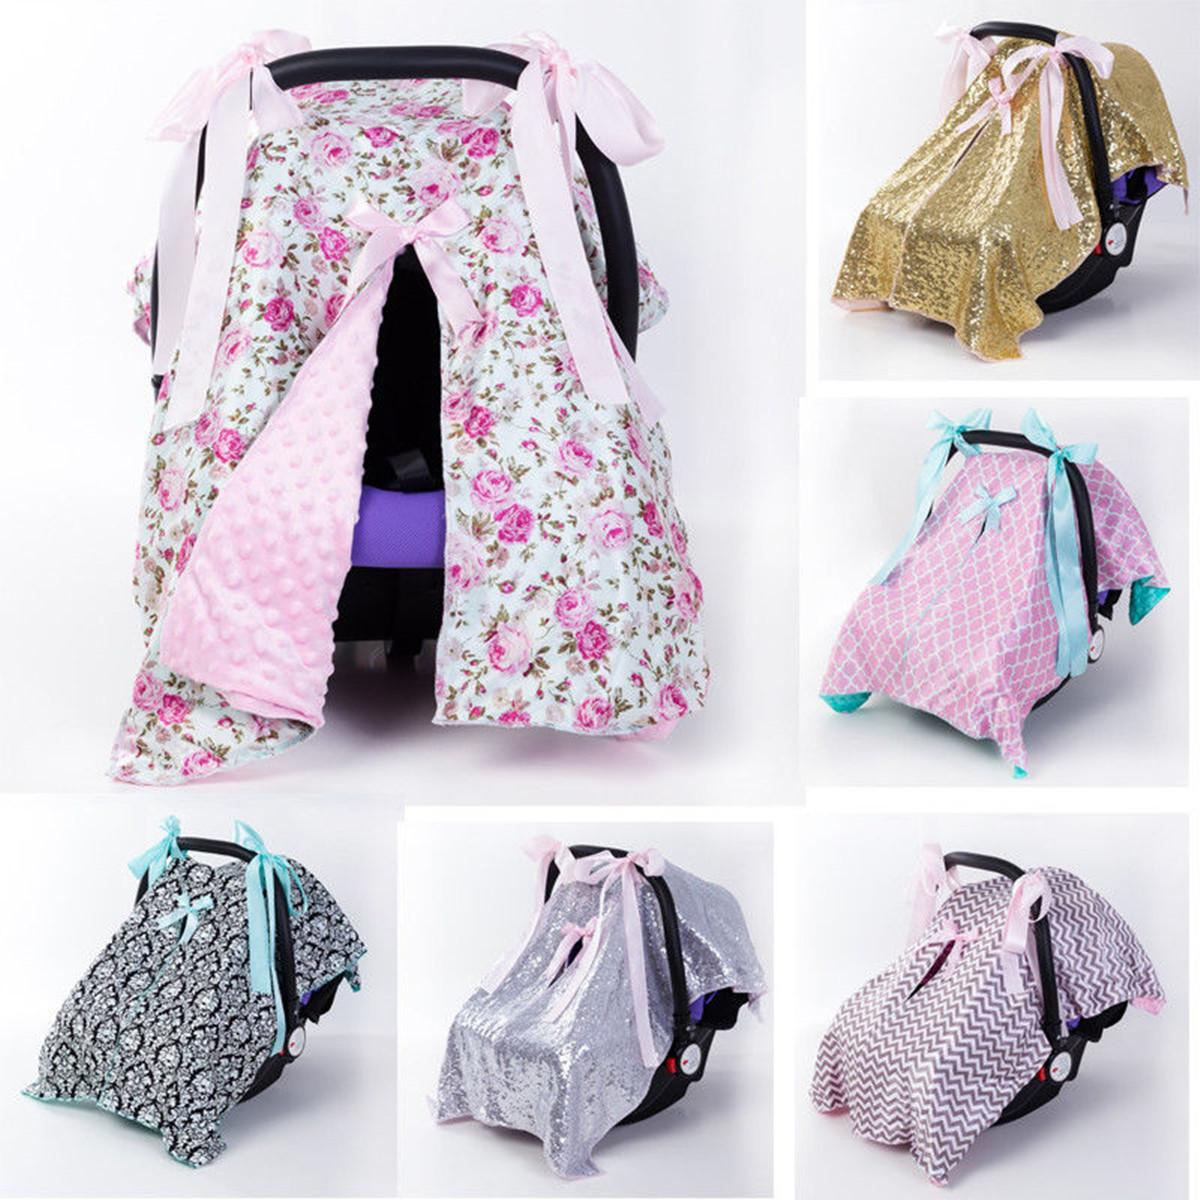 NEW Baby Car Seat Blanket Cover Fashion Bow Newborn Baby Girls Soft Safety Car Seat Canopy Nursing Cover Multi-use Blanket Cover